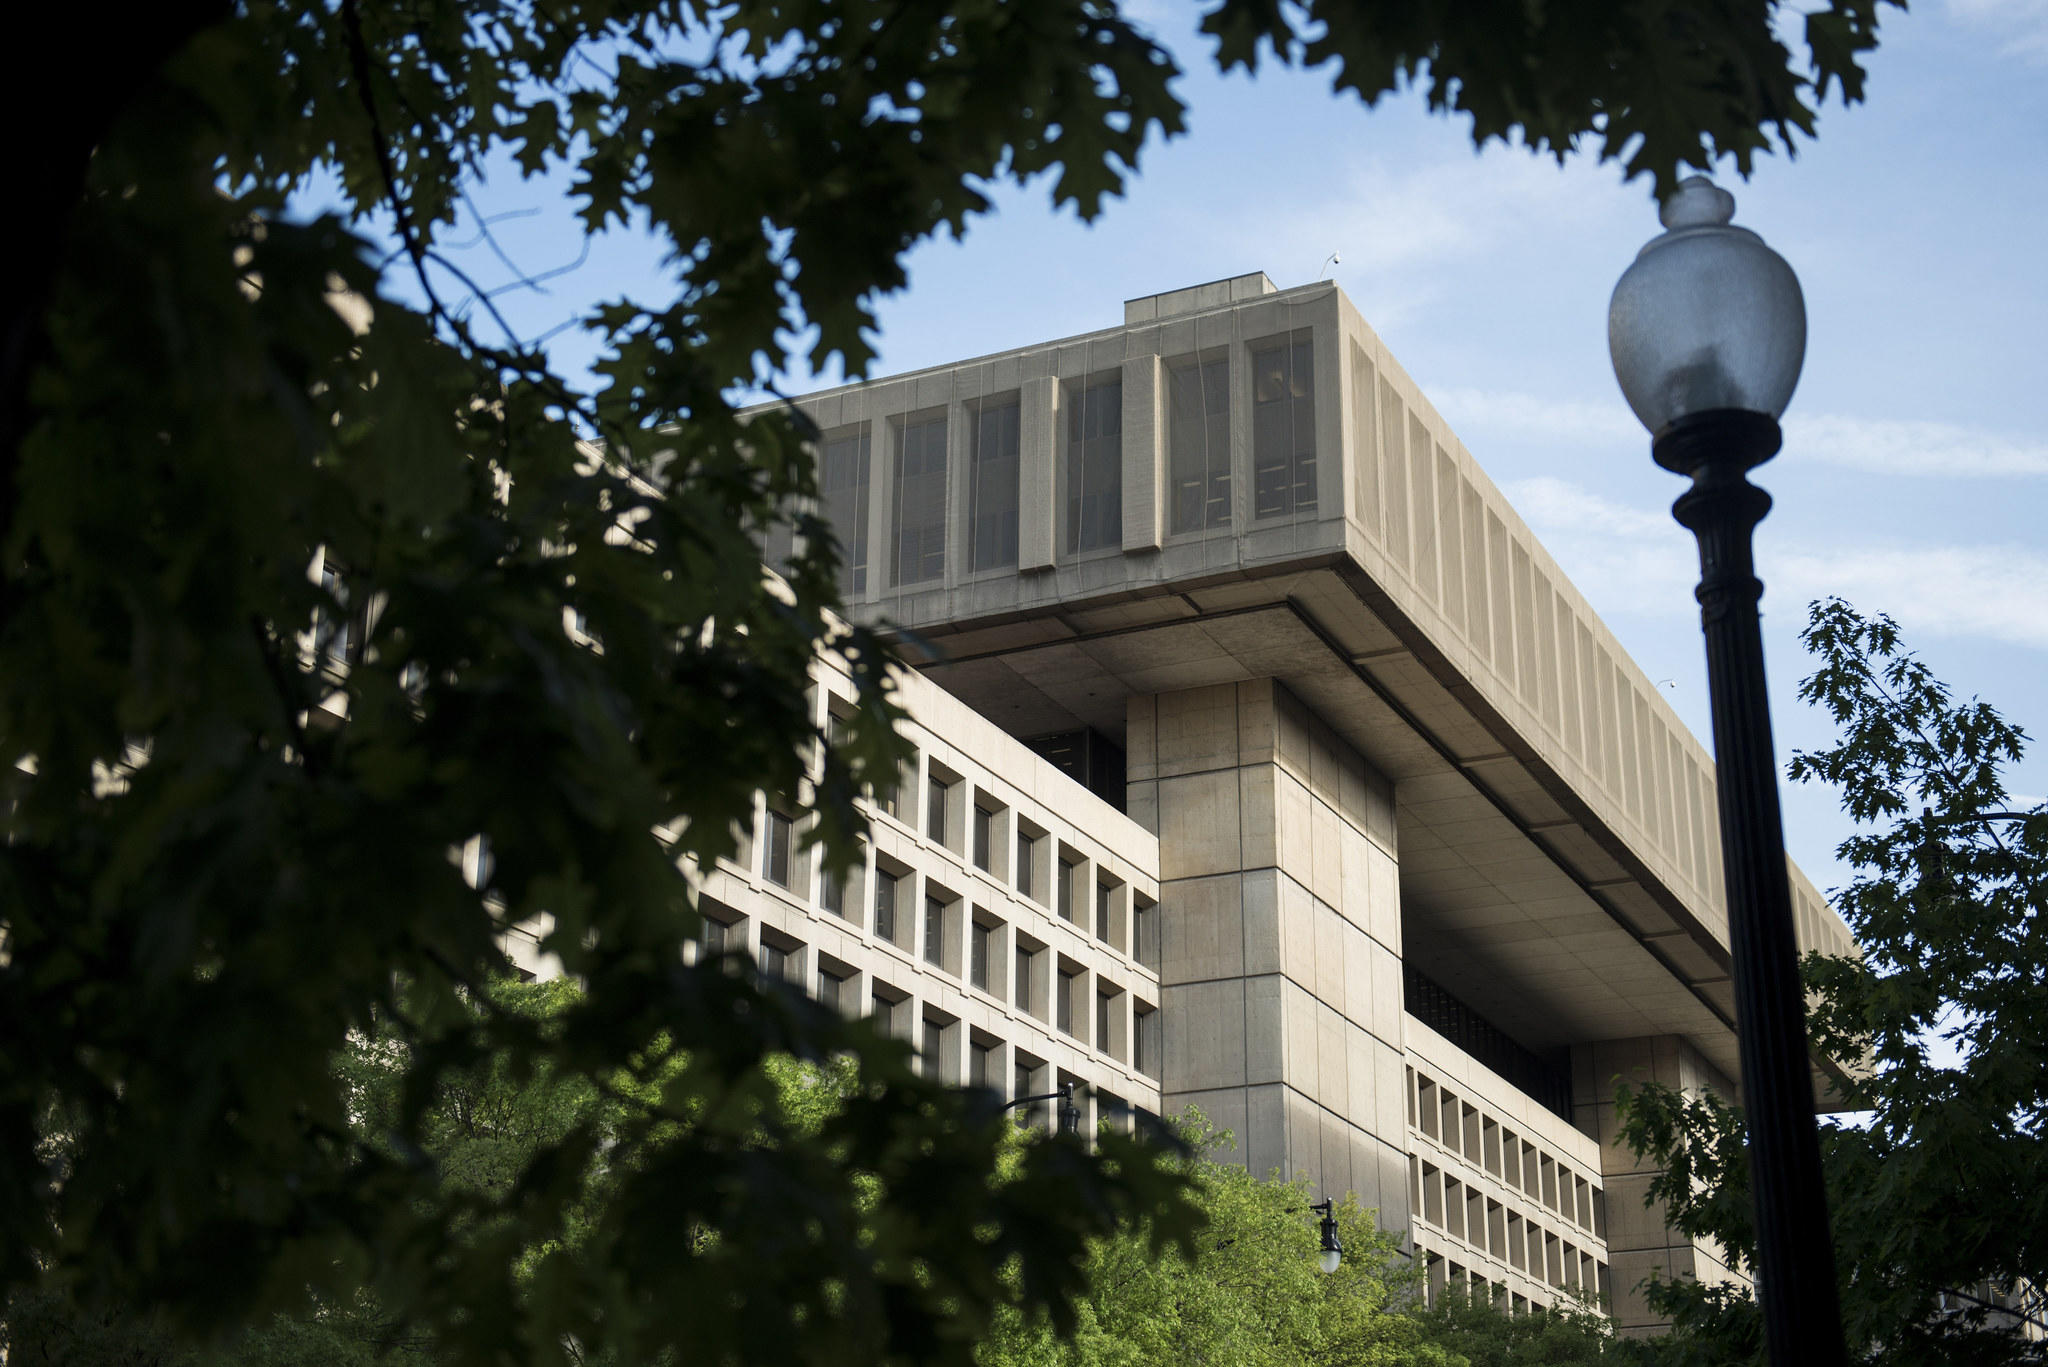 The FBI announcement that it will move its headquarters has sparked fierce competition in the Washington DC area withe bordering states Maryland and Virginia competing to have the FBI find a new home in their states.